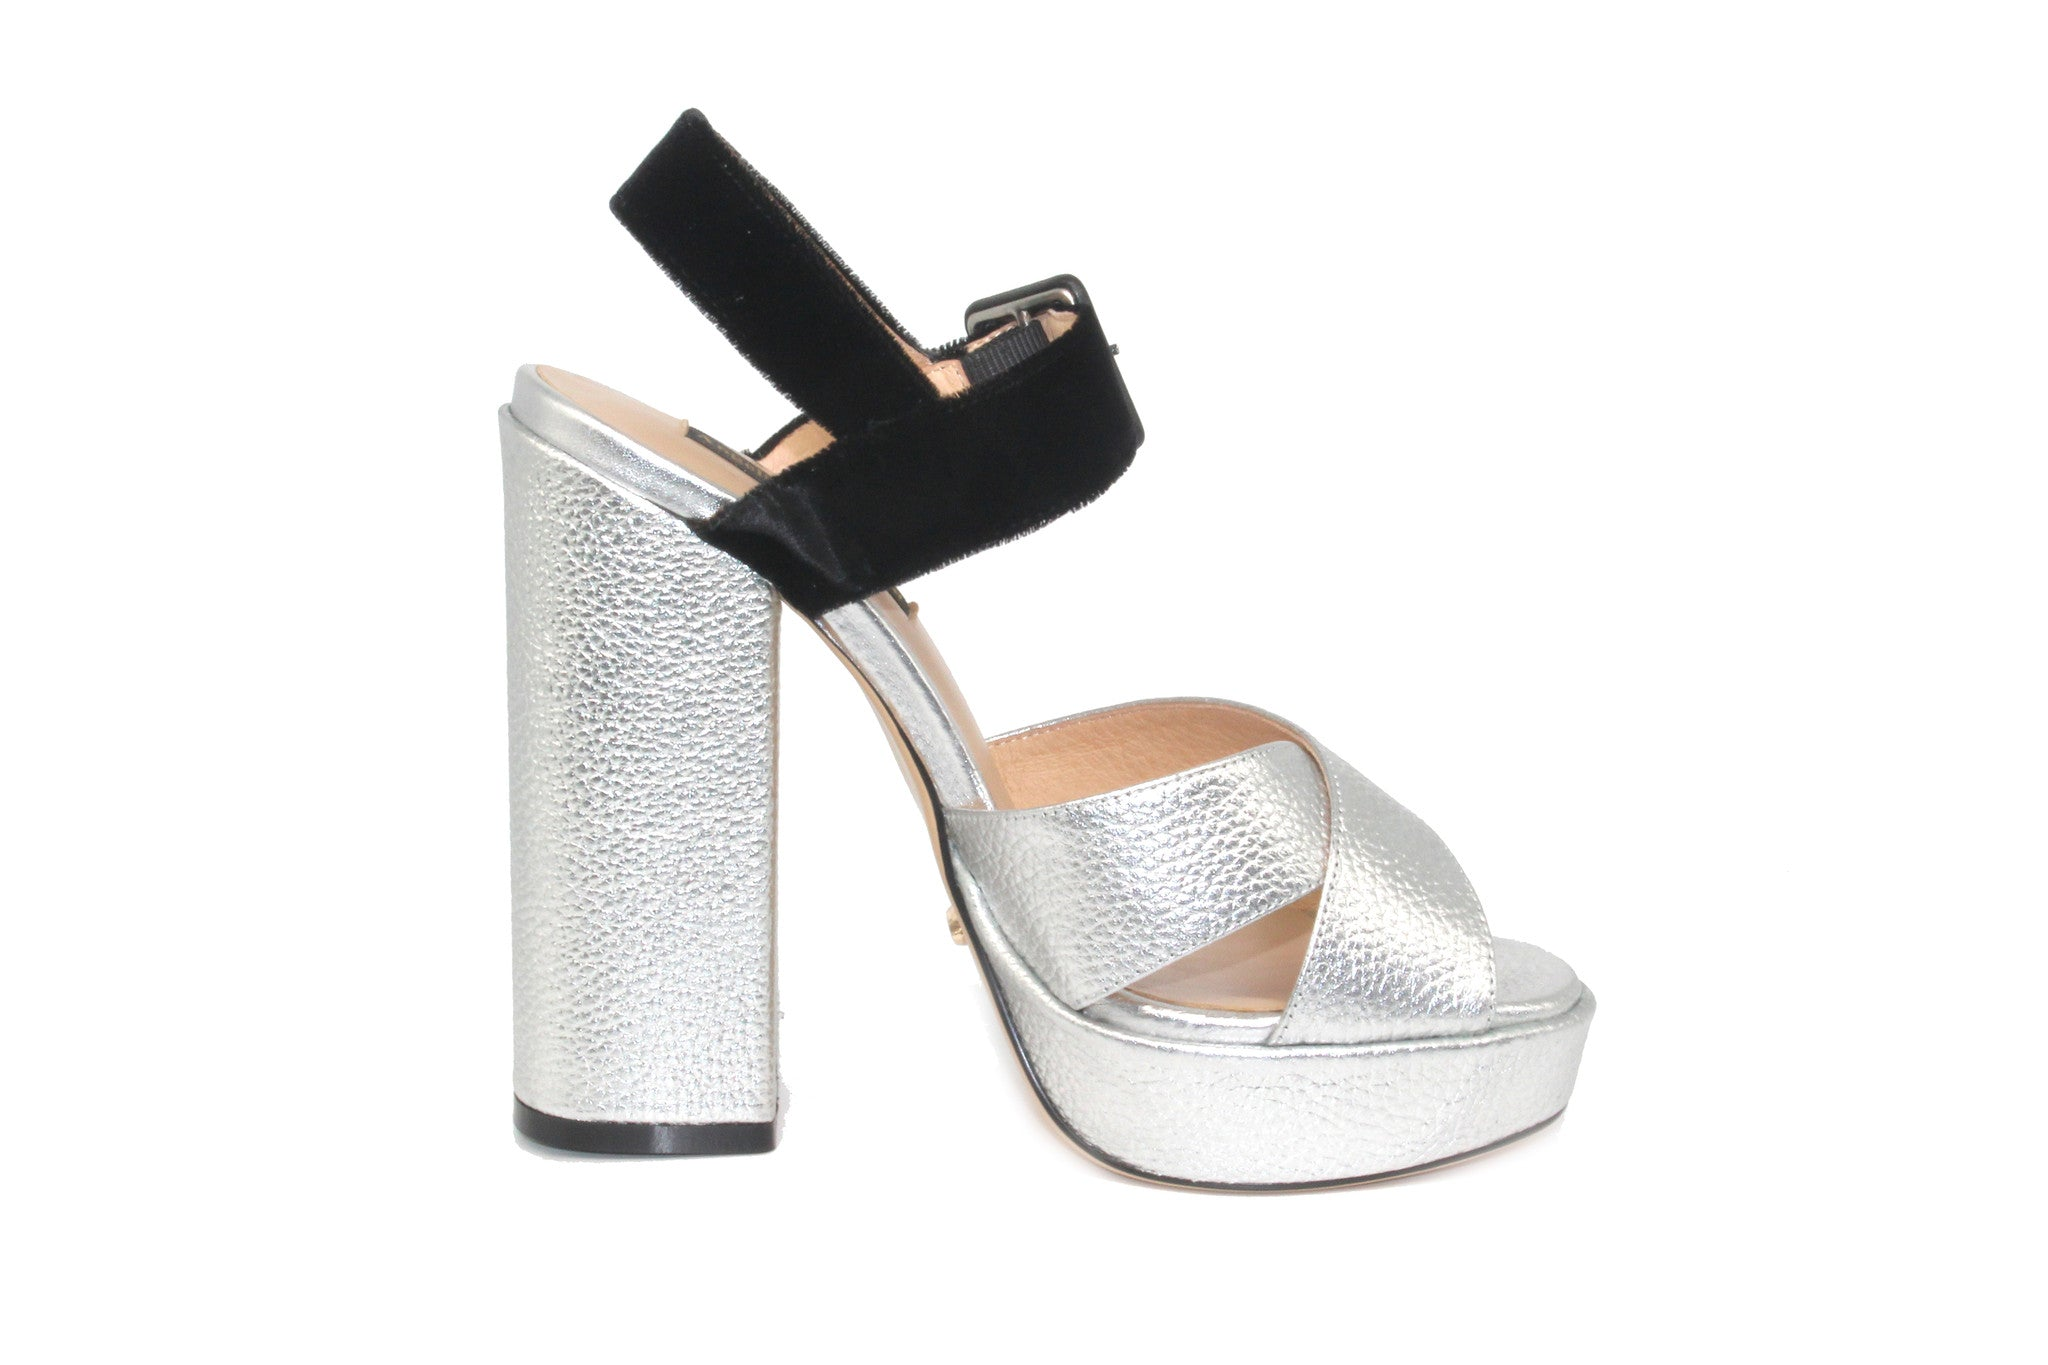 Silver Metallic High Heels - Angelina Voloshina - AVHEELS 003c352a543d